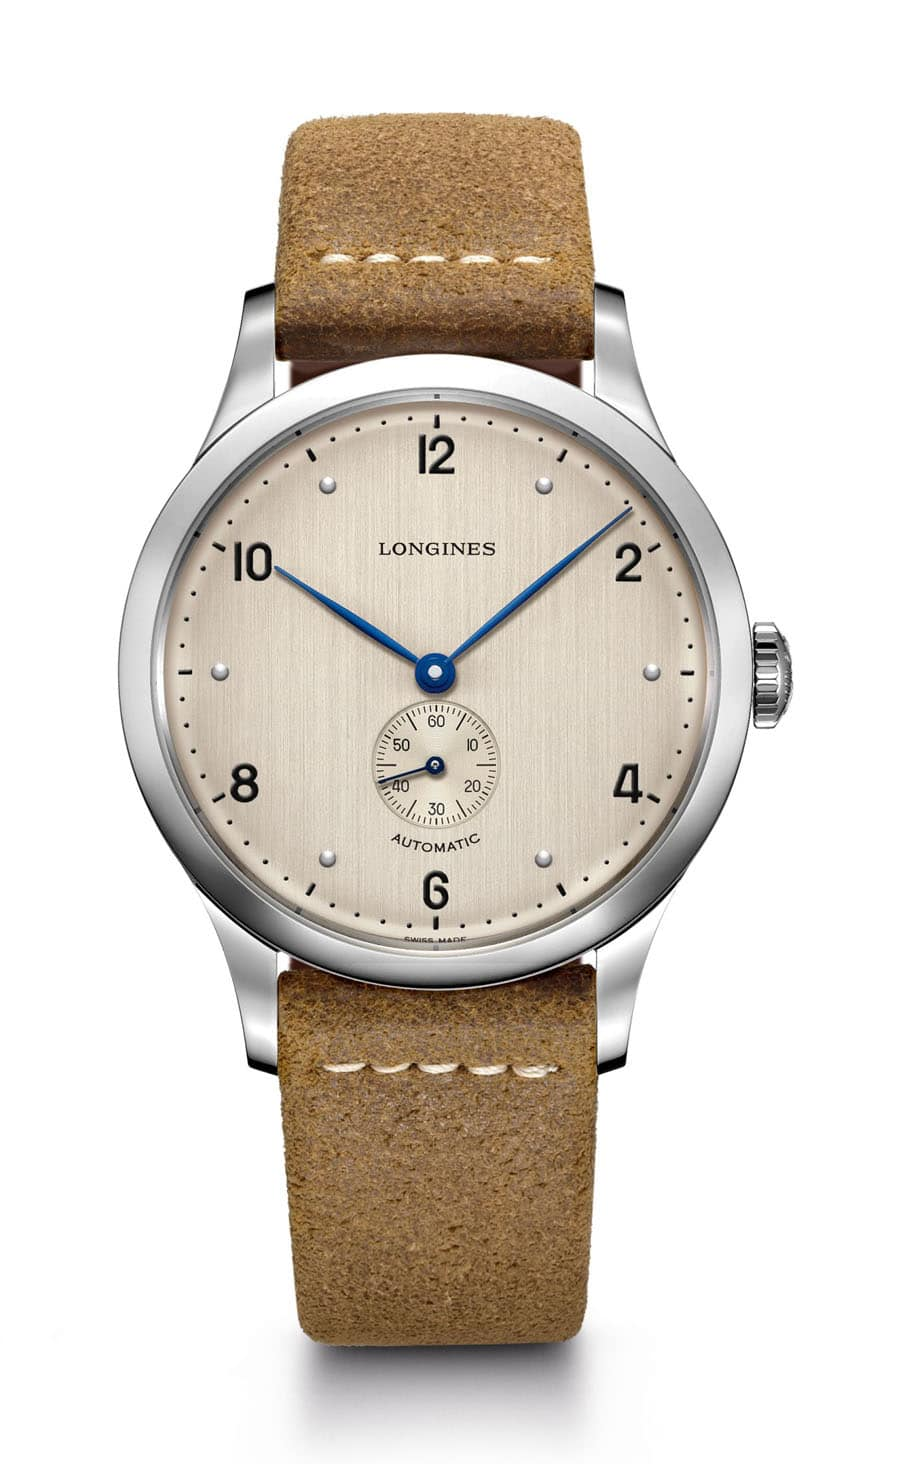 Lognines: The Longines Heritage 1945